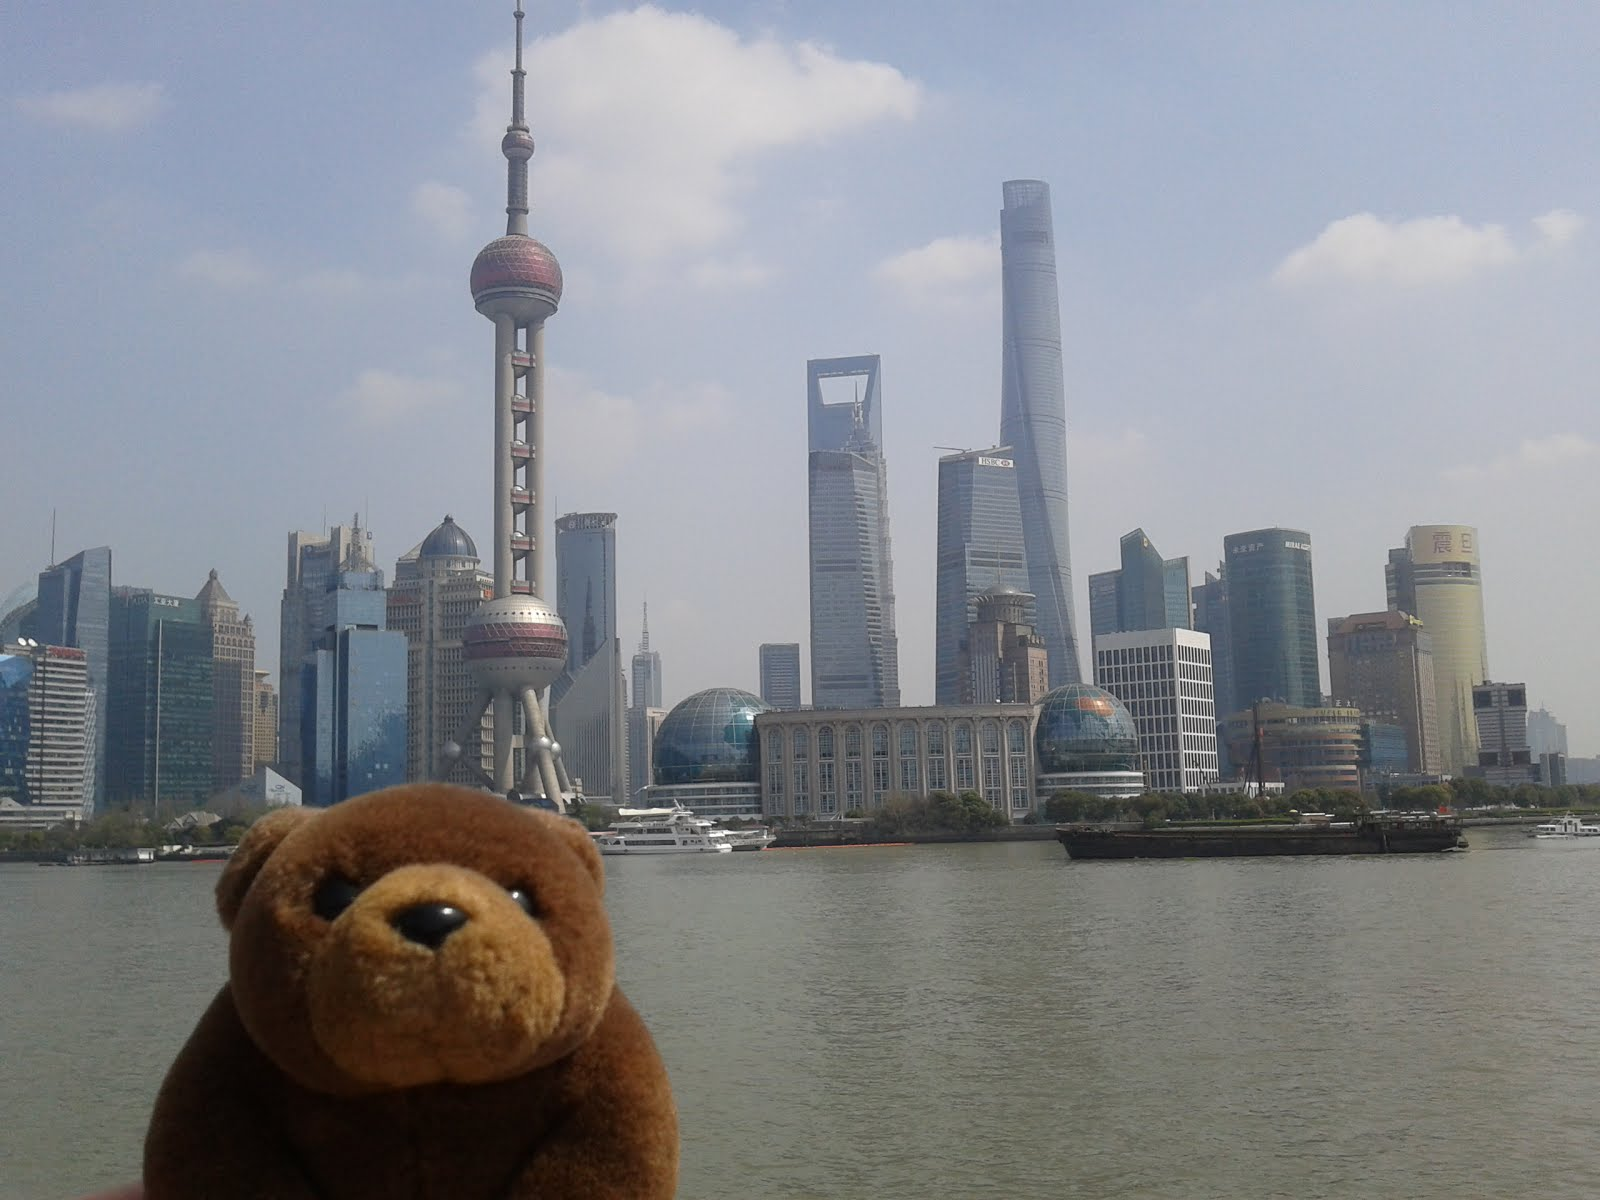 Teddy in Shanghai